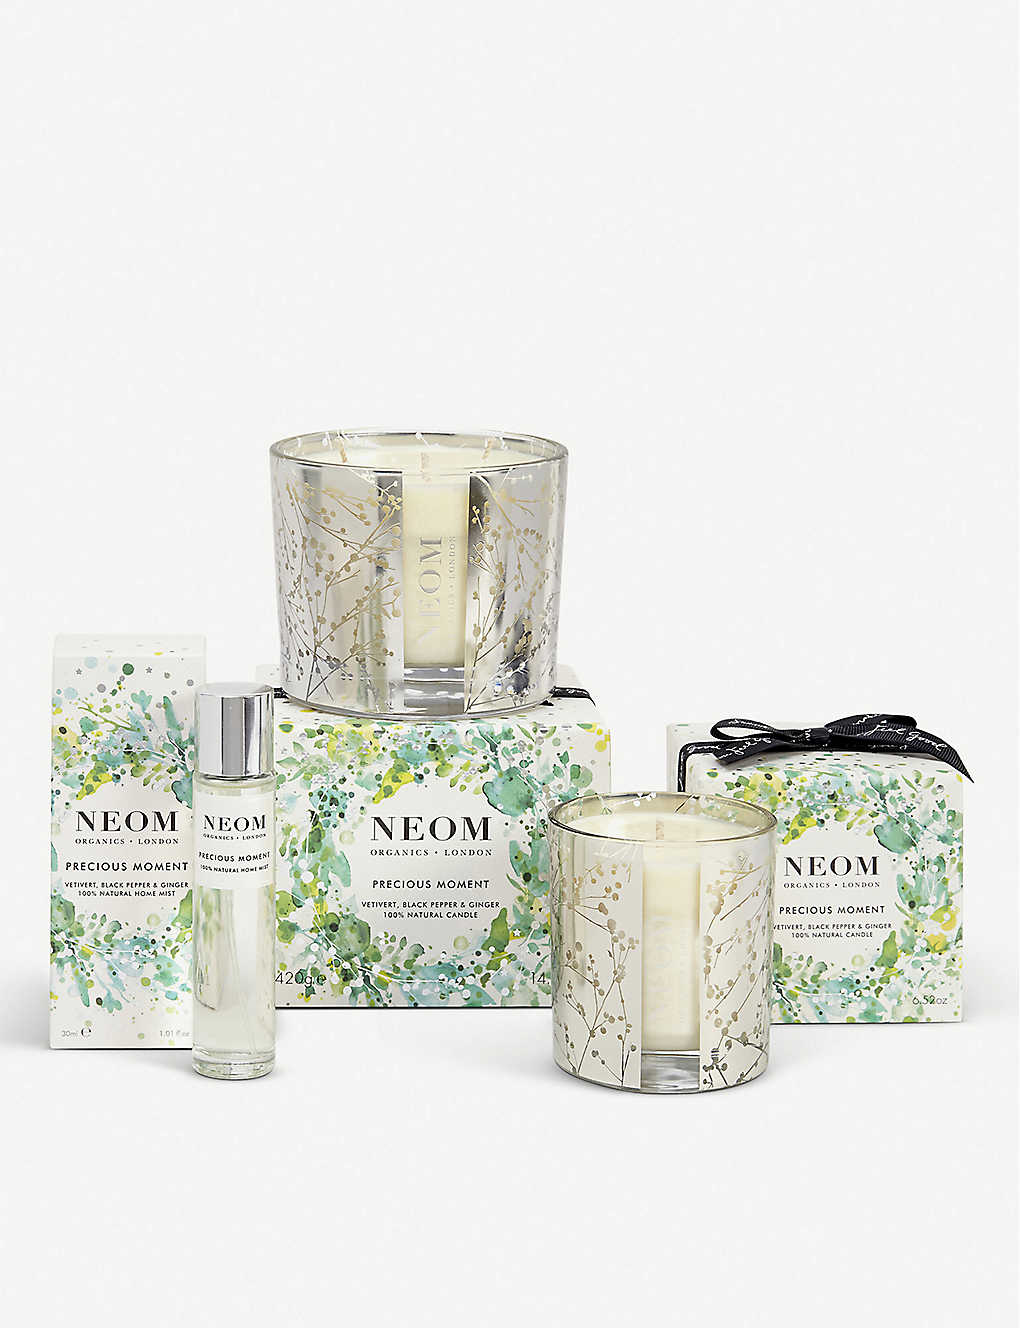 NEOM LUXURY ORGANICS: Precious Moment three-wick scented candle 420g